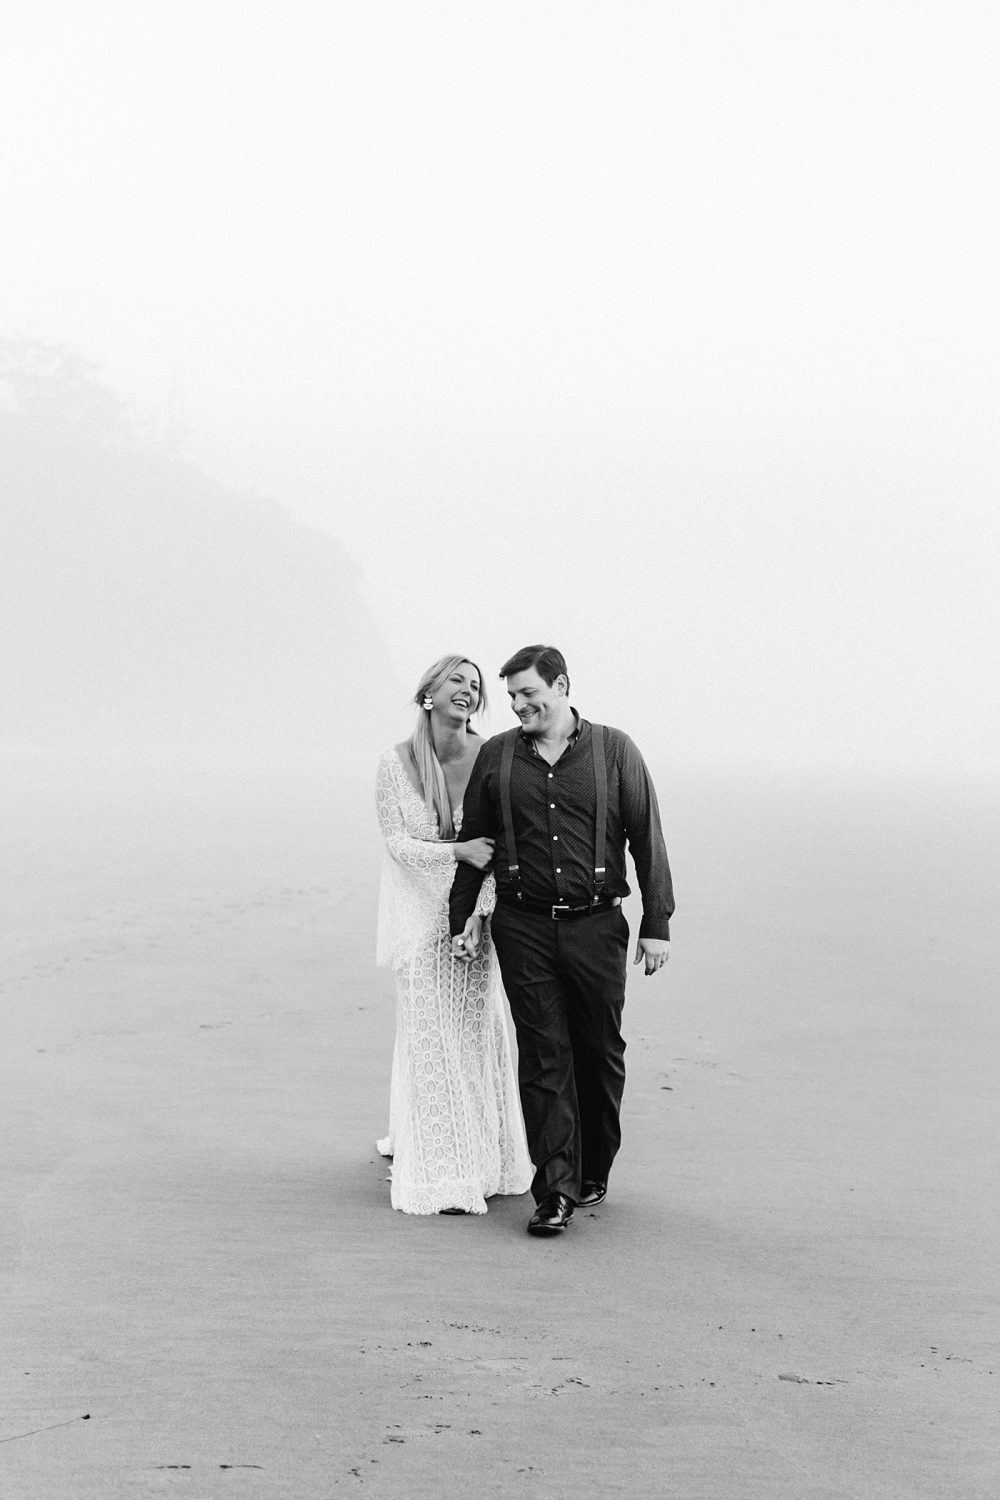 secluded moments after elopement ceremony